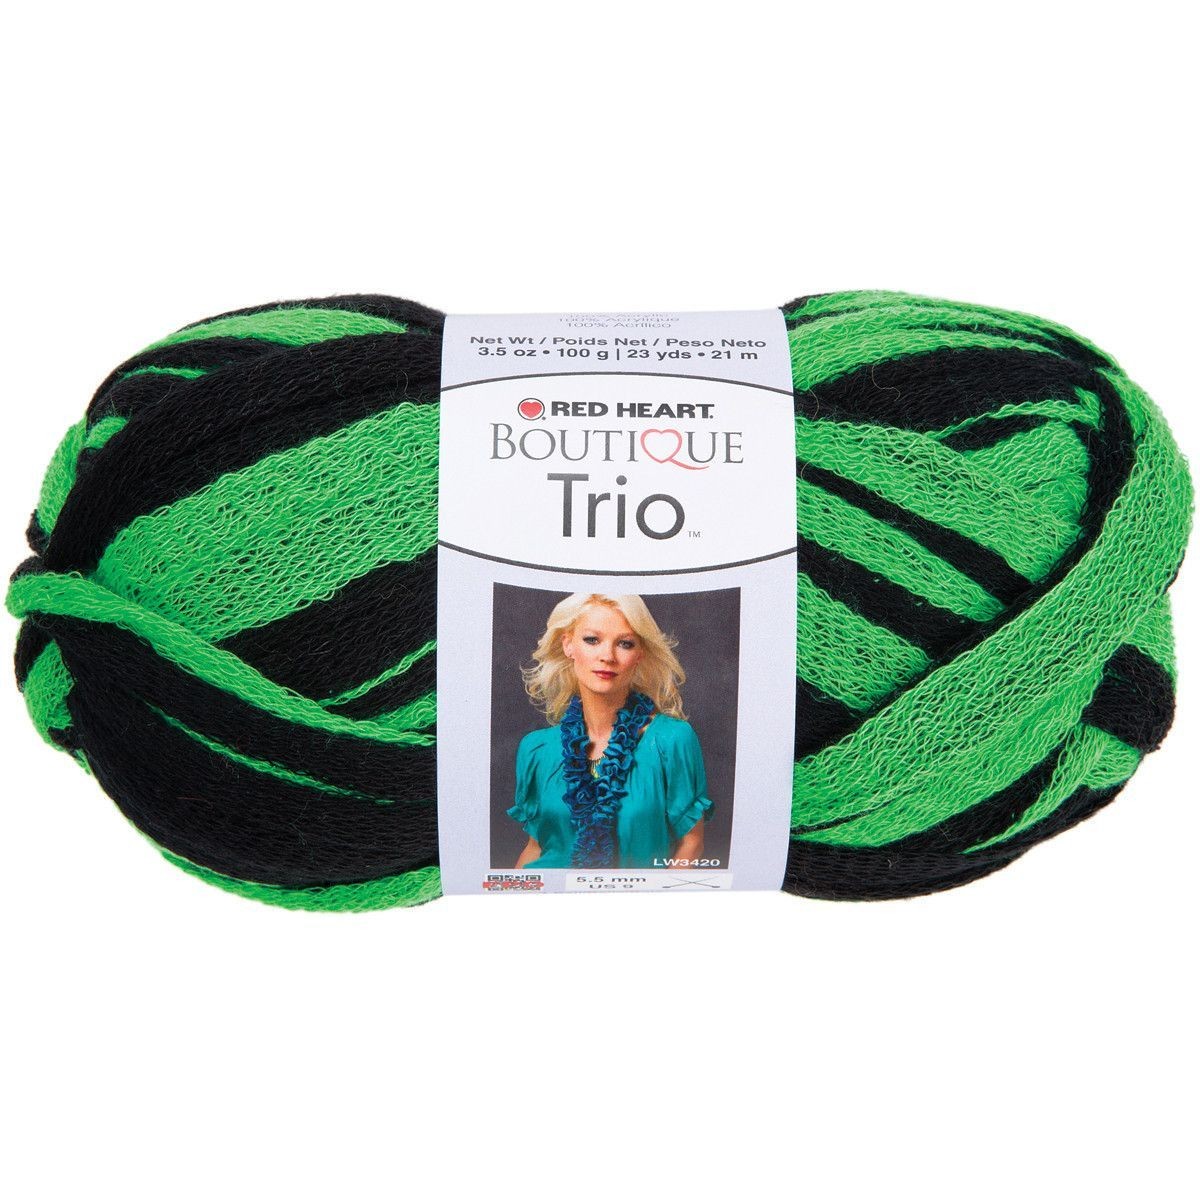 Red Heart® Boutique Trio™ Yarn Go Green   Products   Pinterest